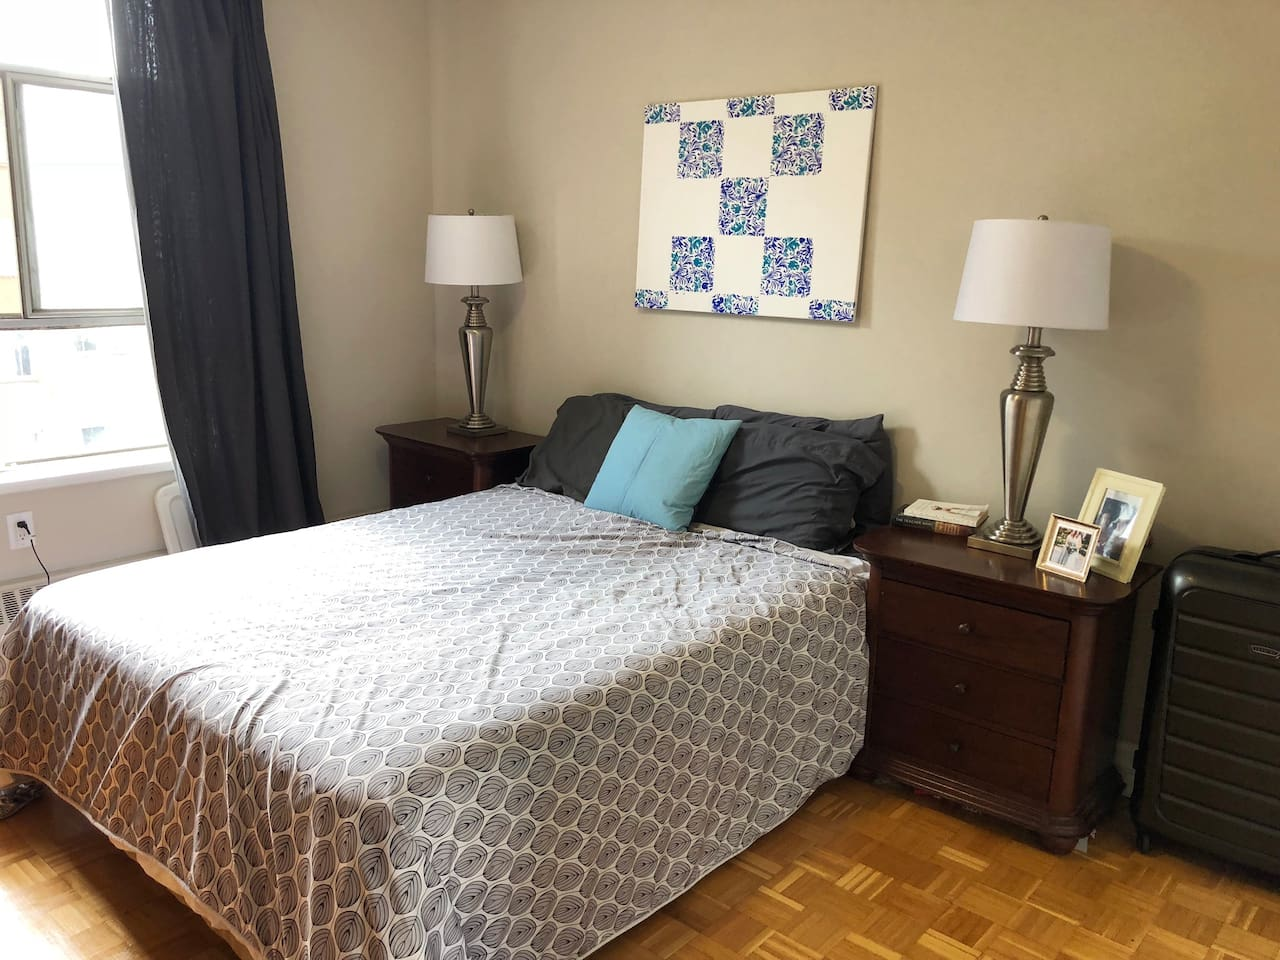 Spacious bedroom with a queen bed, google mini home, and window.